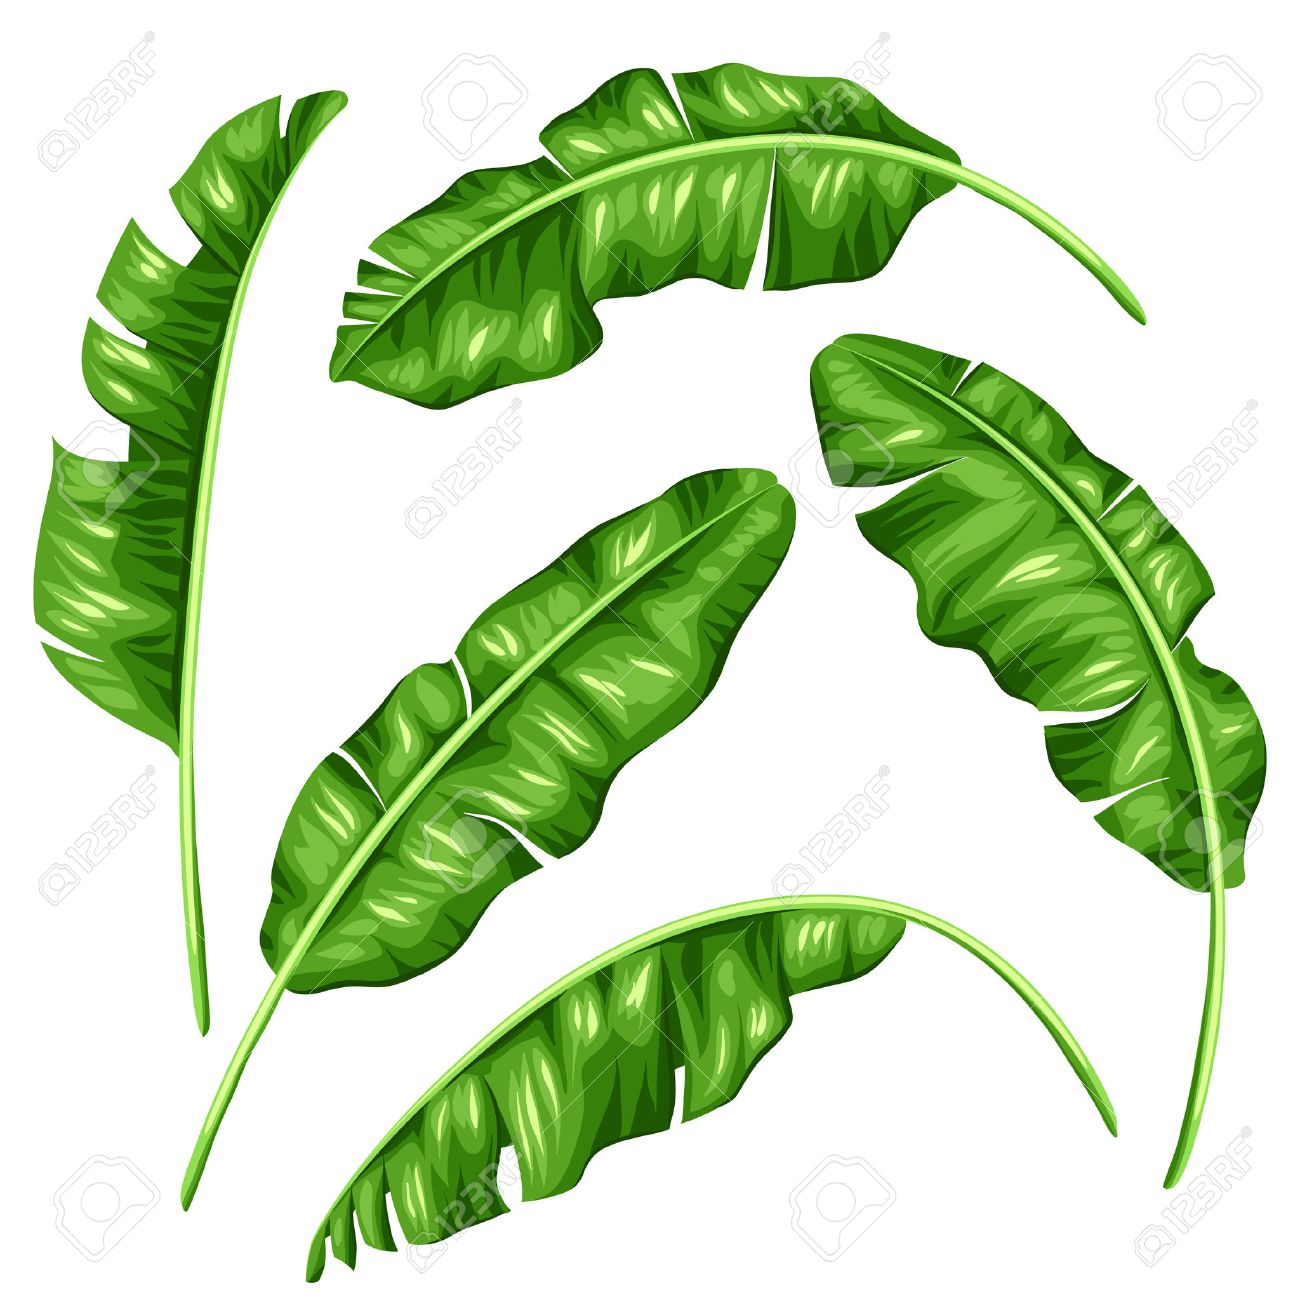 Banana Leaves Set Image Of Decorative Tropical Foliage Stock Vector